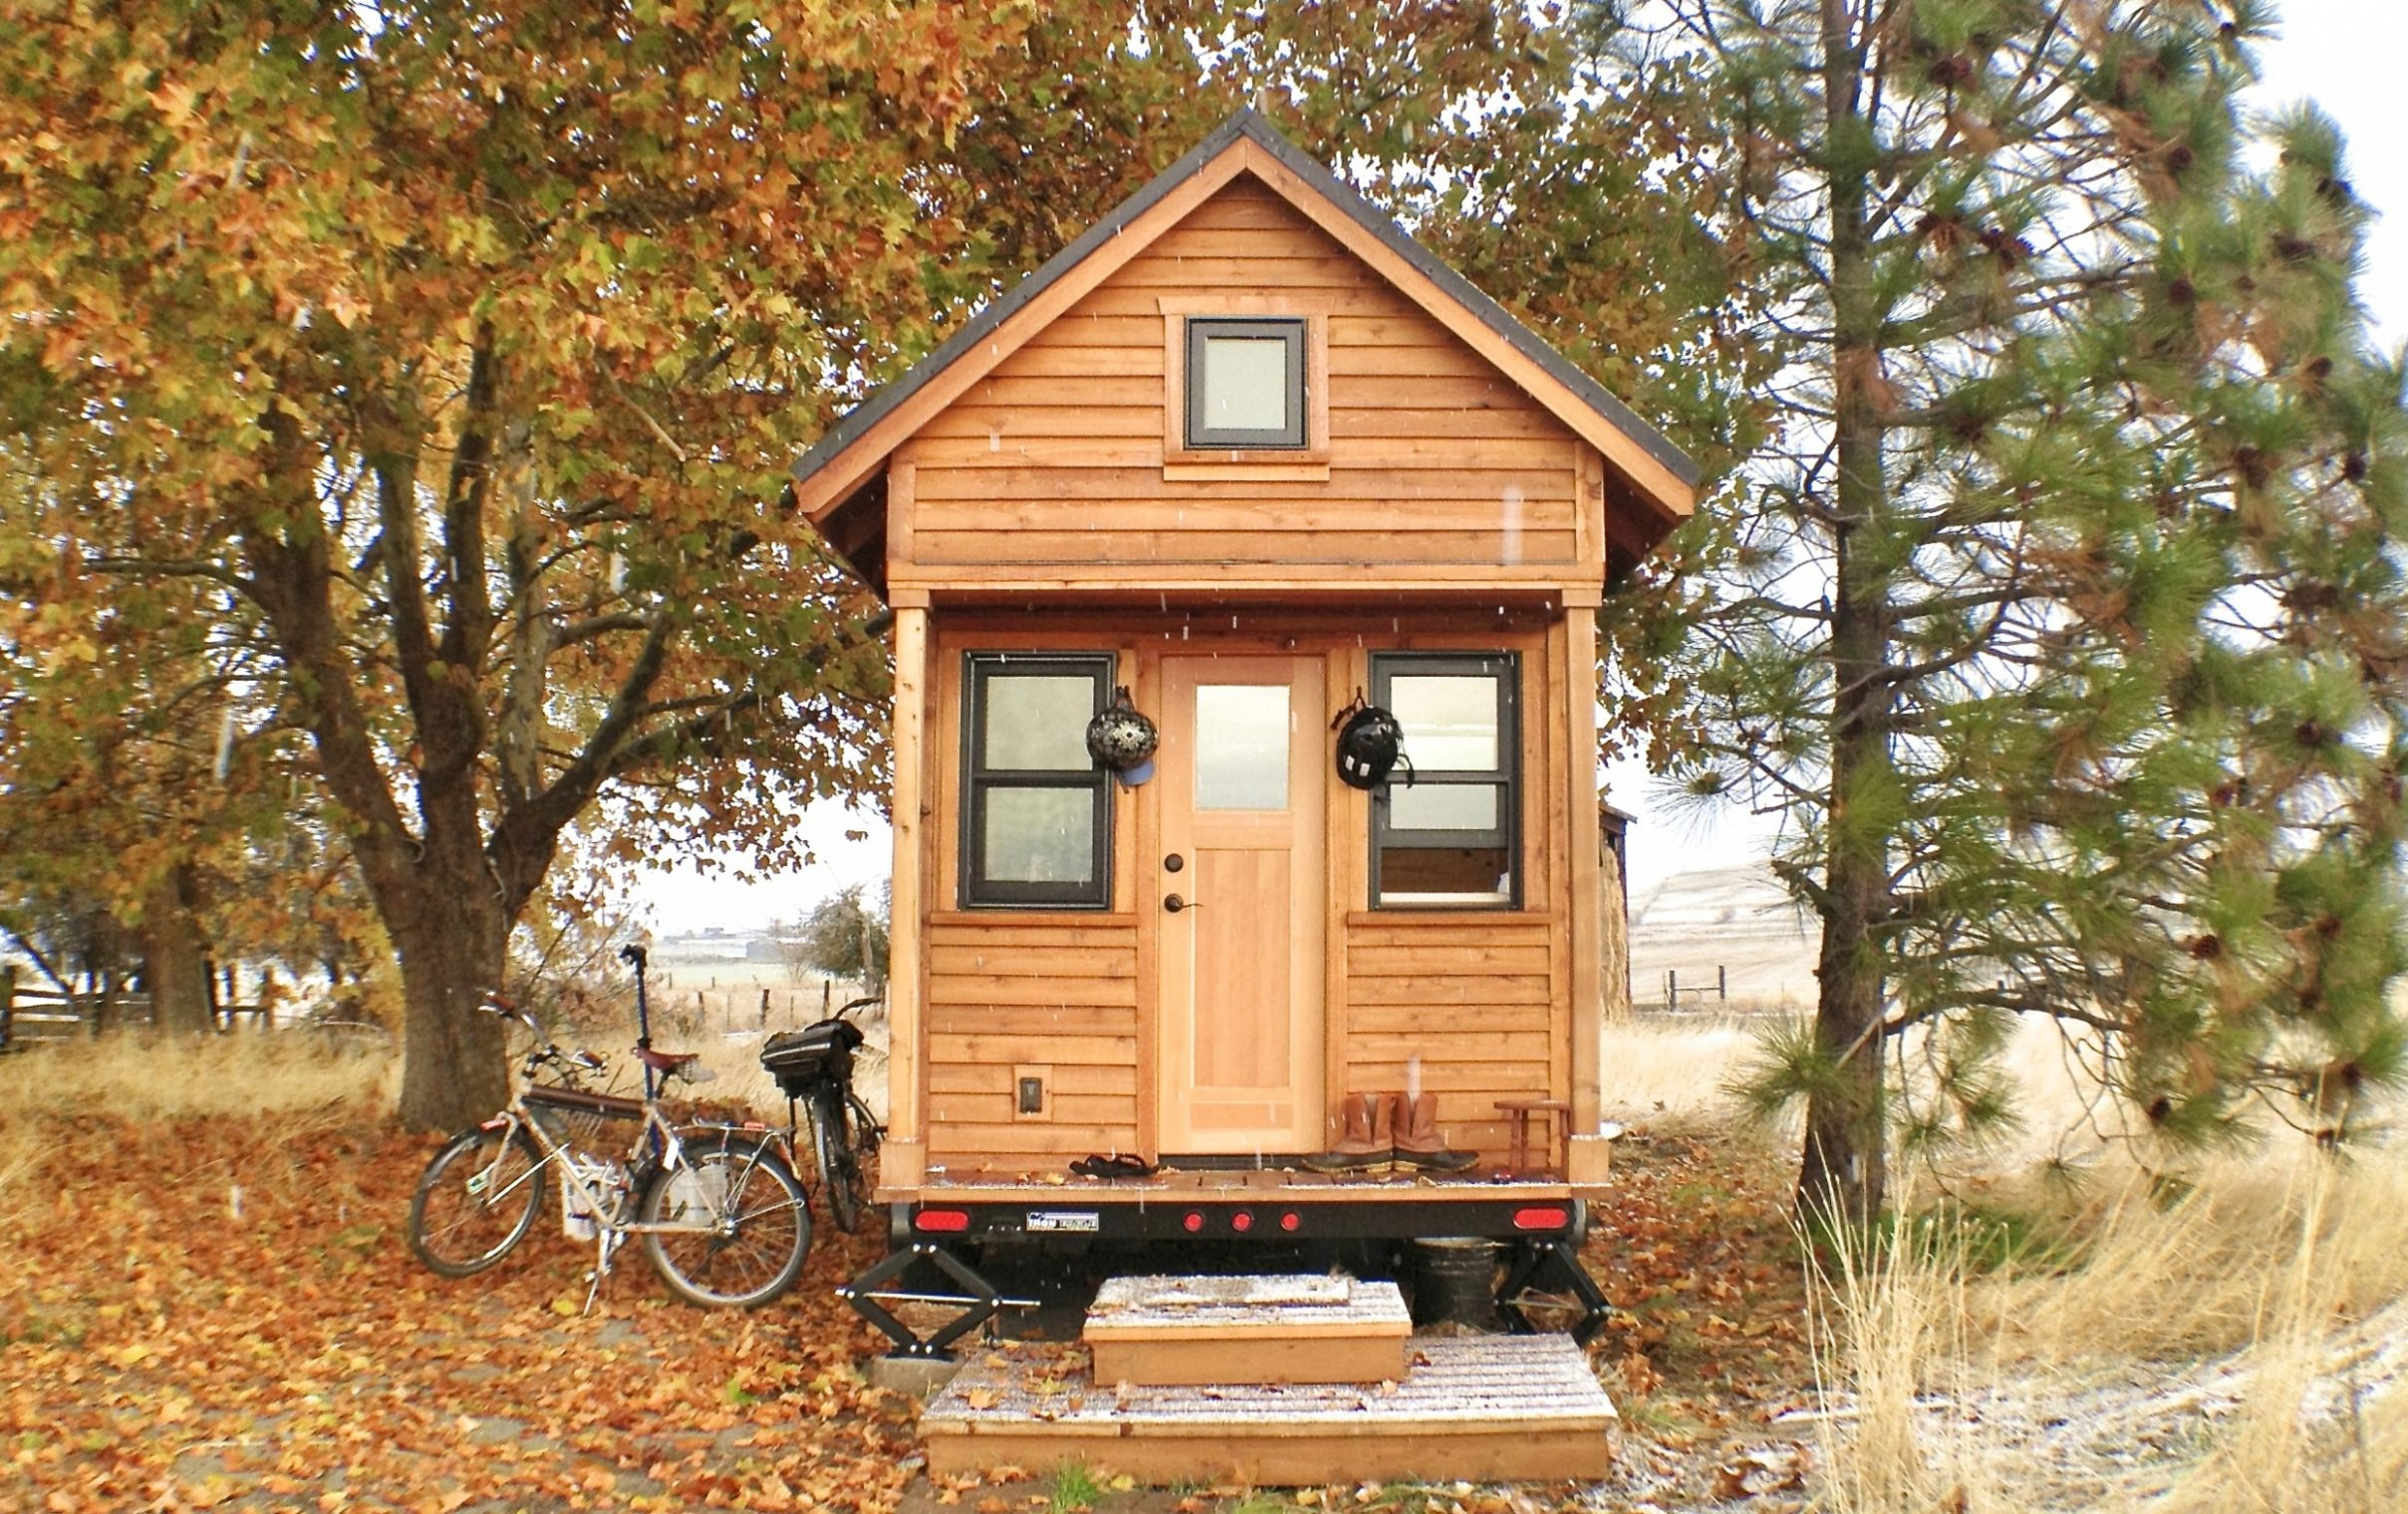 9 big questions about tiny houses | HowStuffWorks